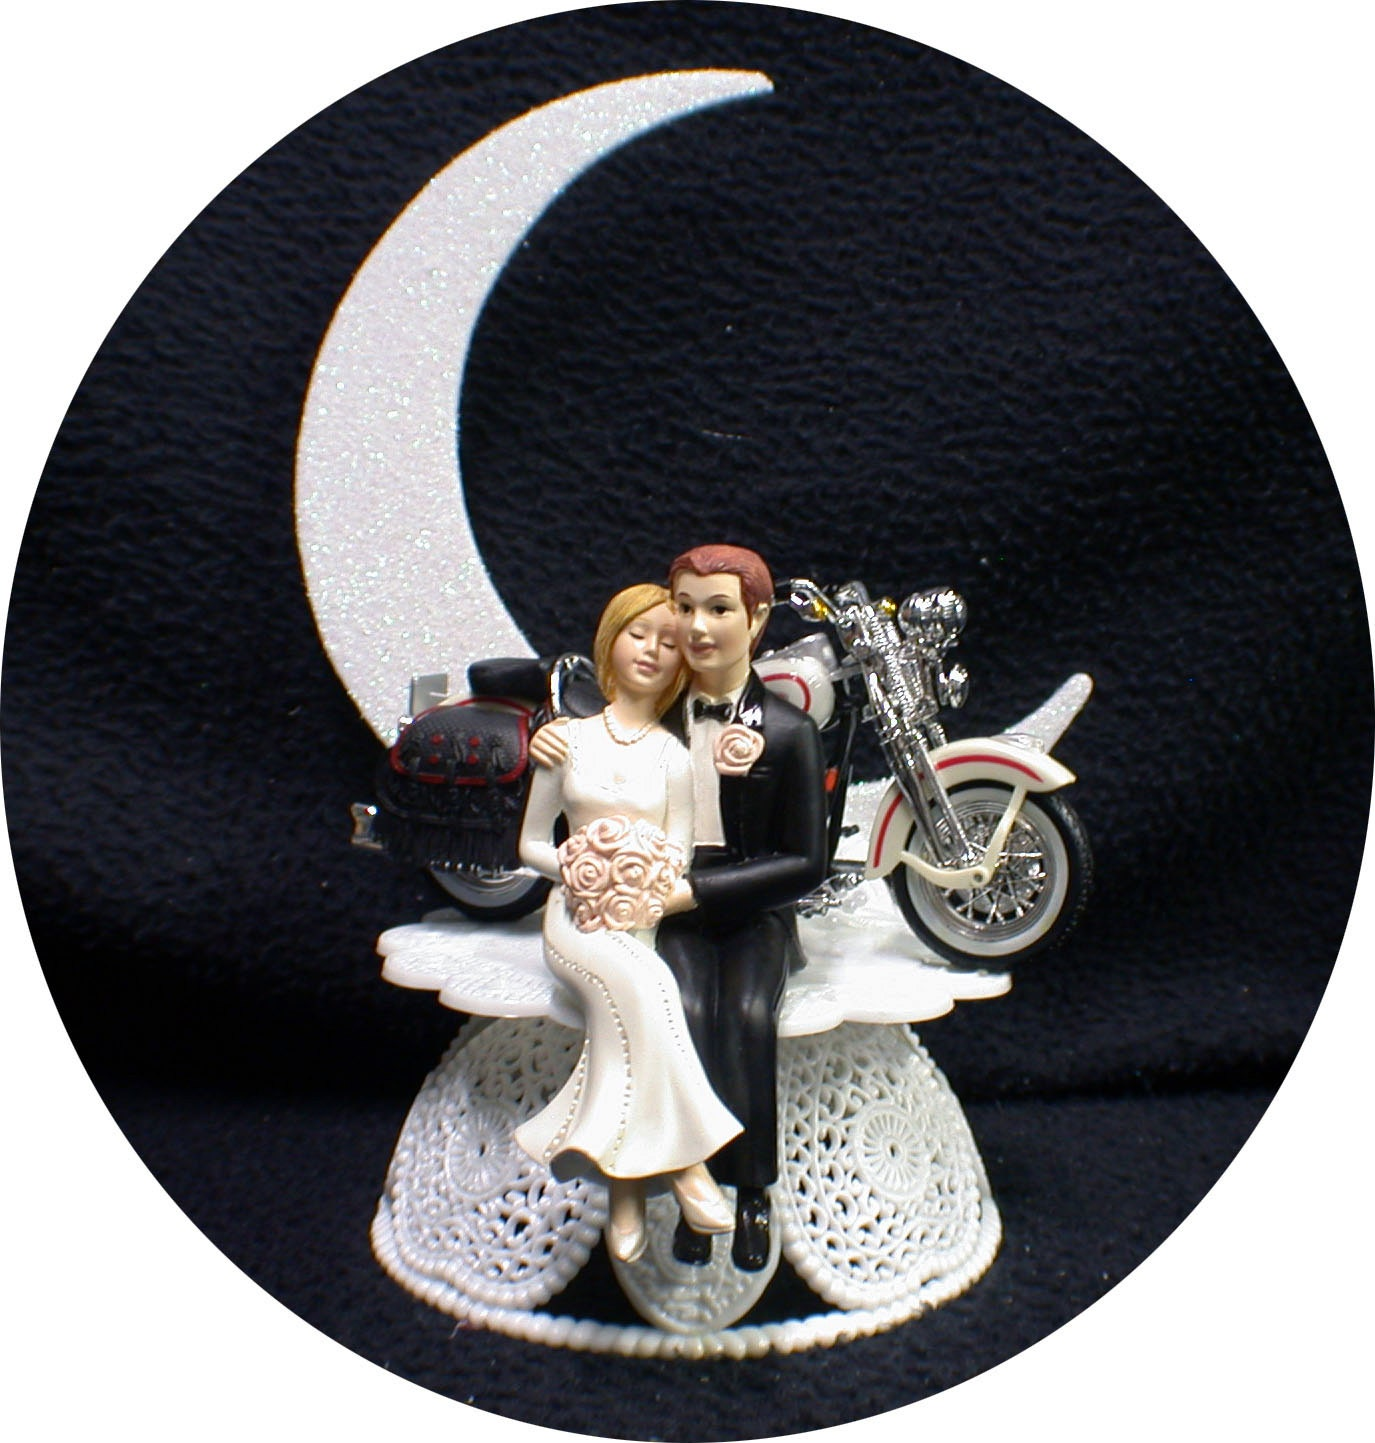 harley davidson wedding cake topper uk wedding cake topper w diecast white harley davidson 15079